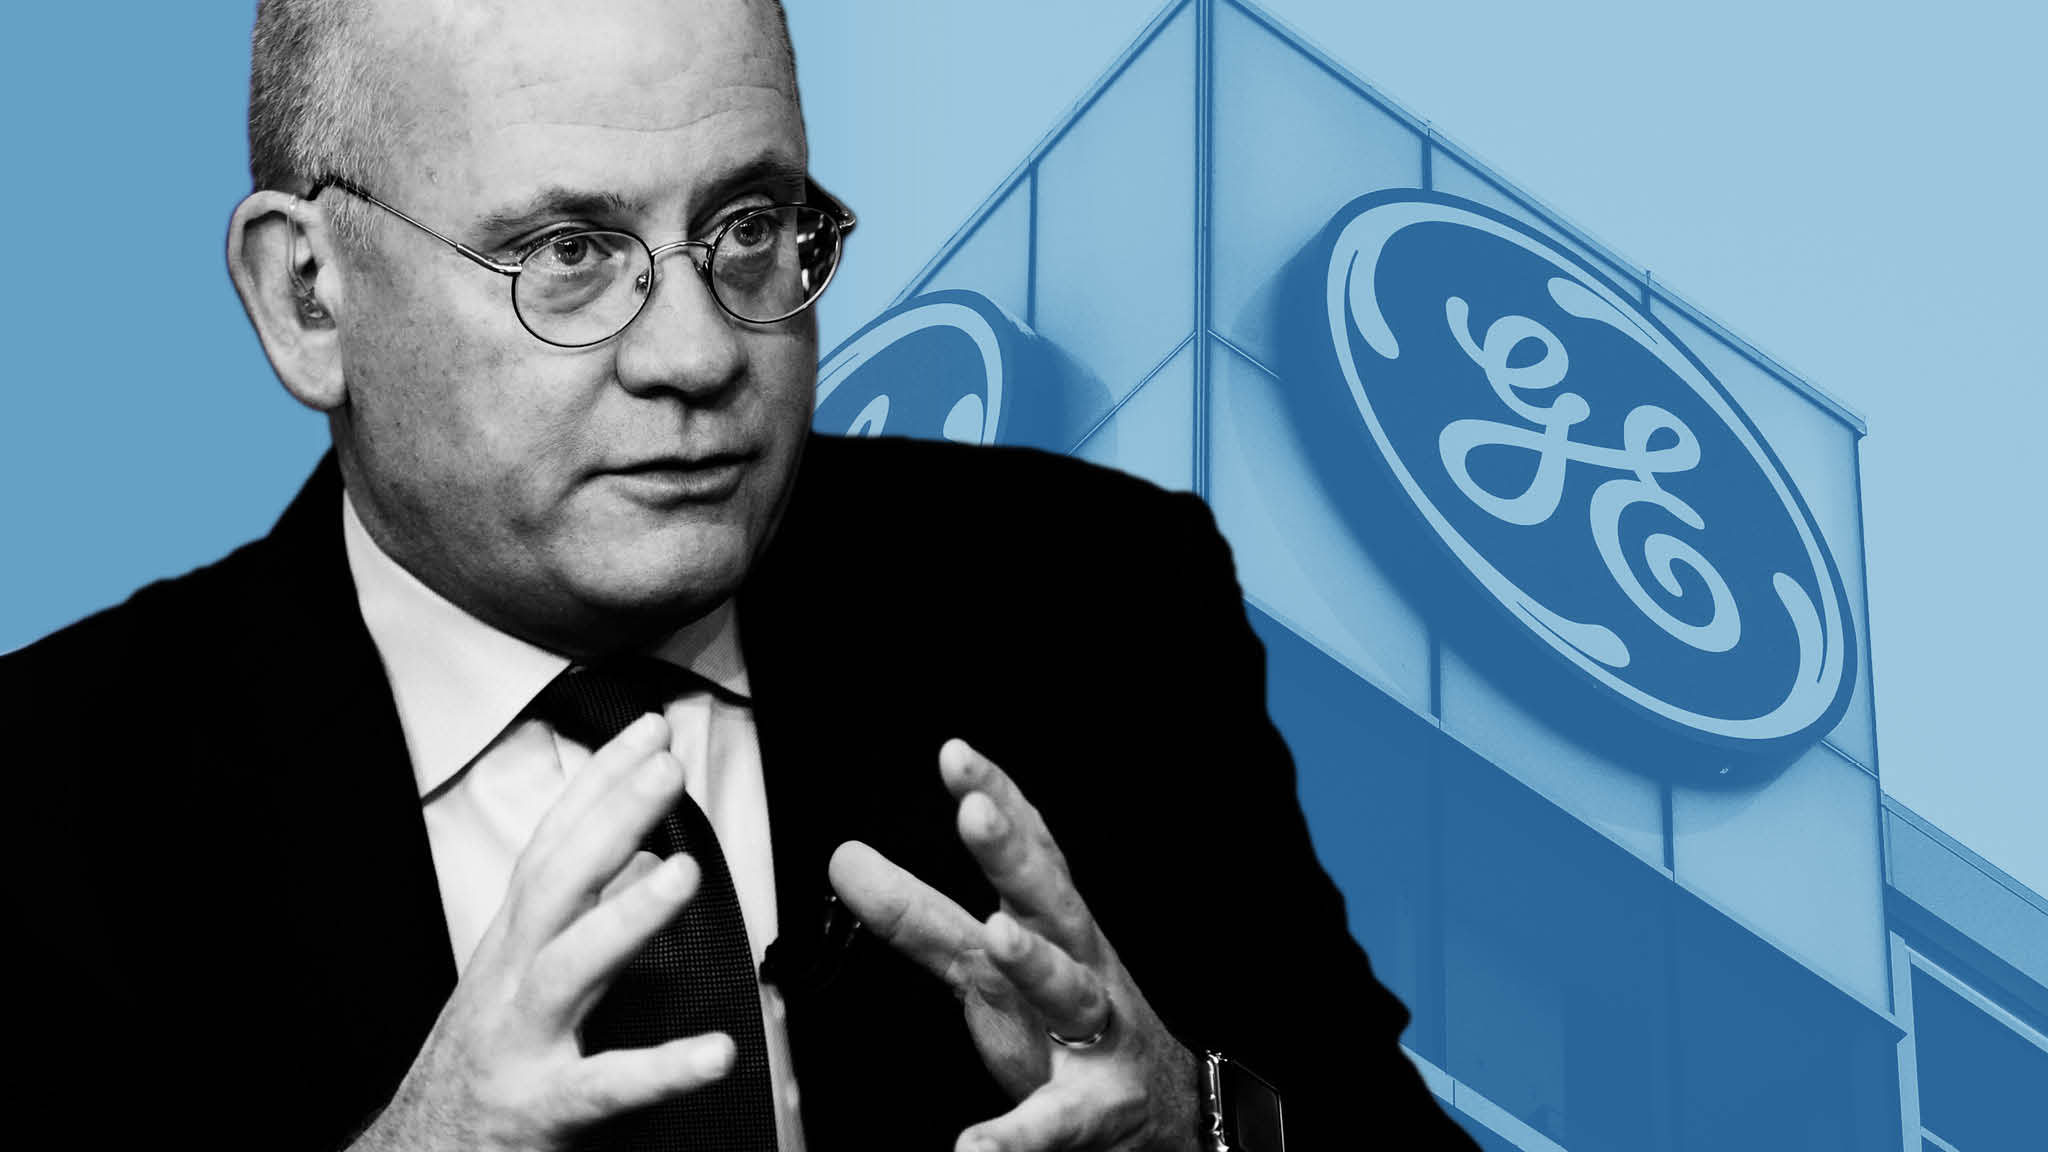 Culp's appointment at GE heralds deeper cost cuts